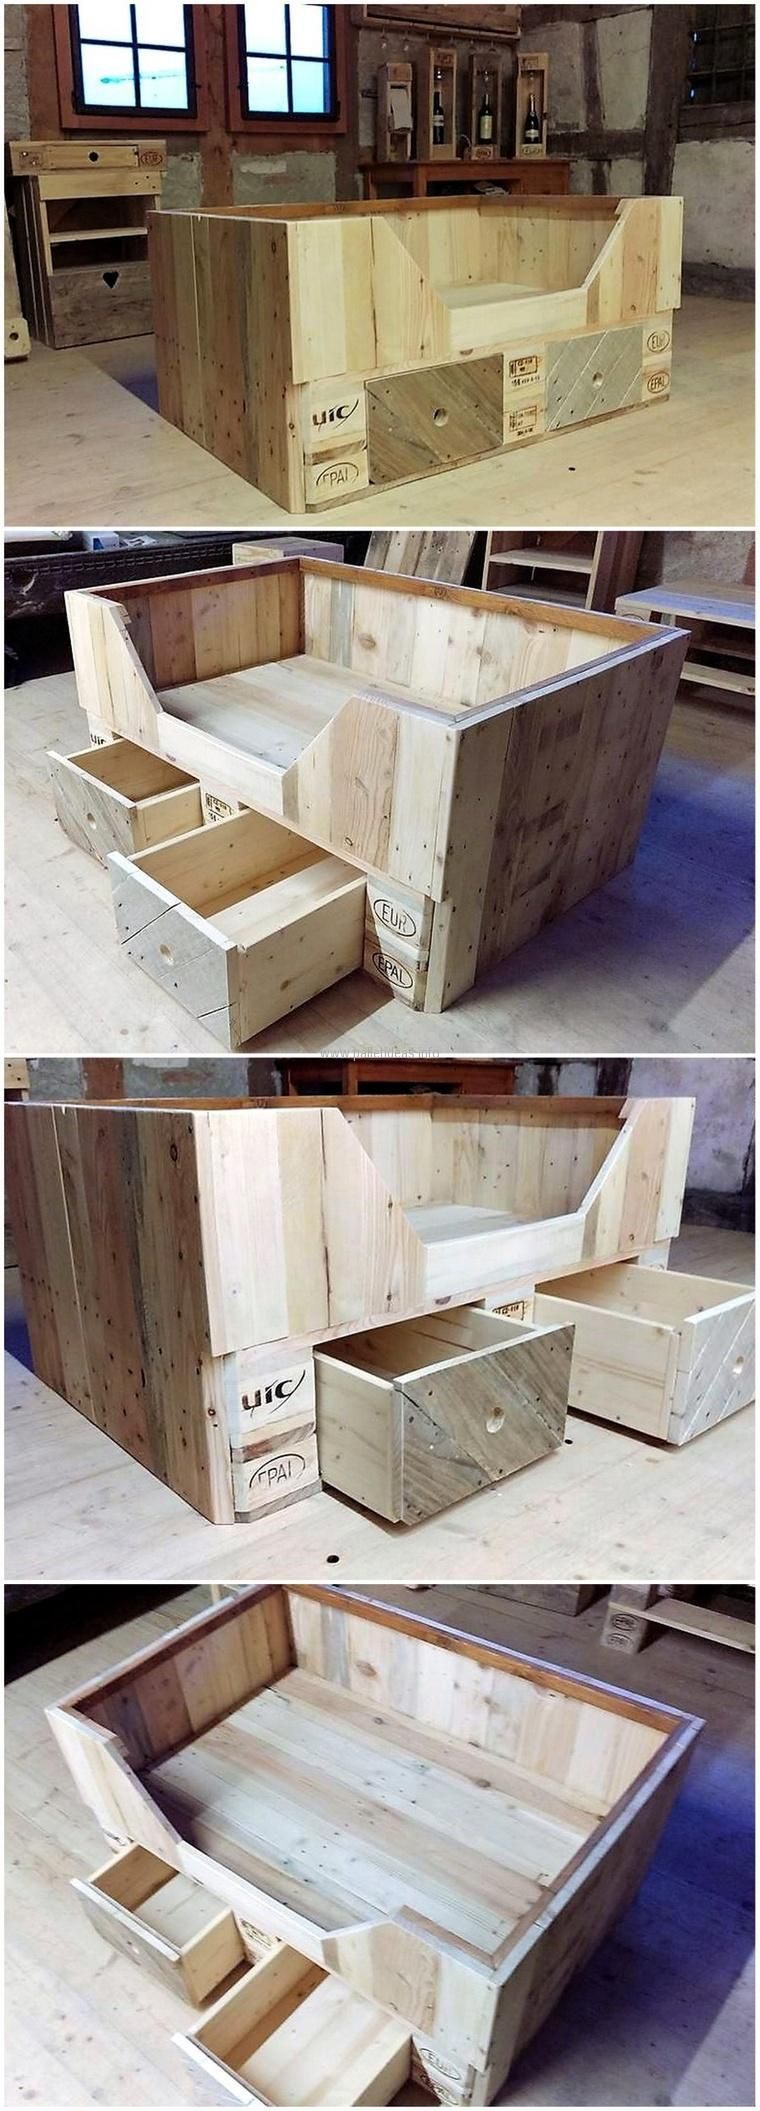 Sensational Ideas For Pallet Wood Recycling Palets Dise O De  # Caio Muebles Infantiles